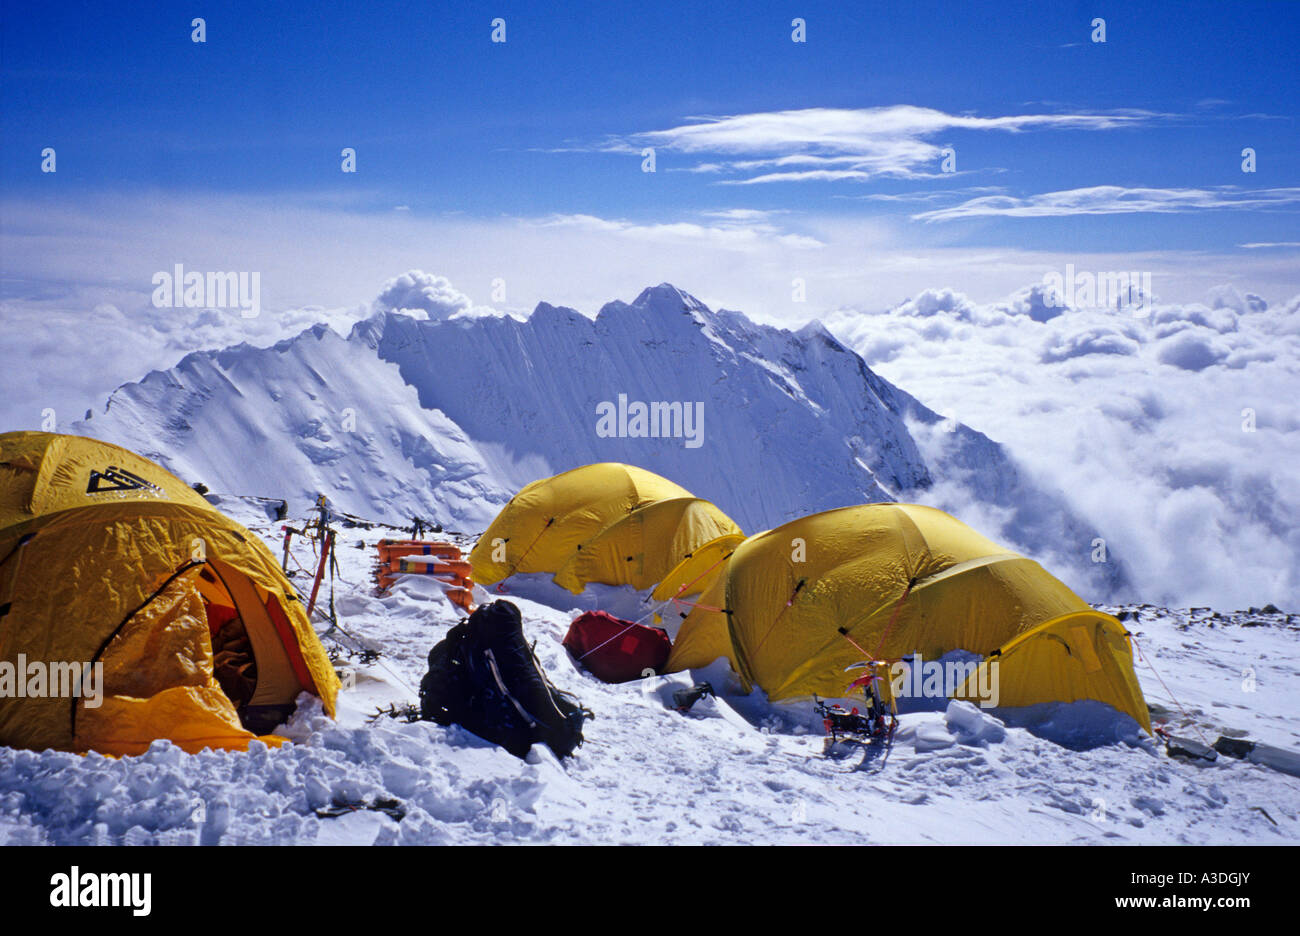 Camp IV, 4 (7950m), South Col, Mount Everest, with view on Nuptse, Himalaya, Nepal - Stock Image